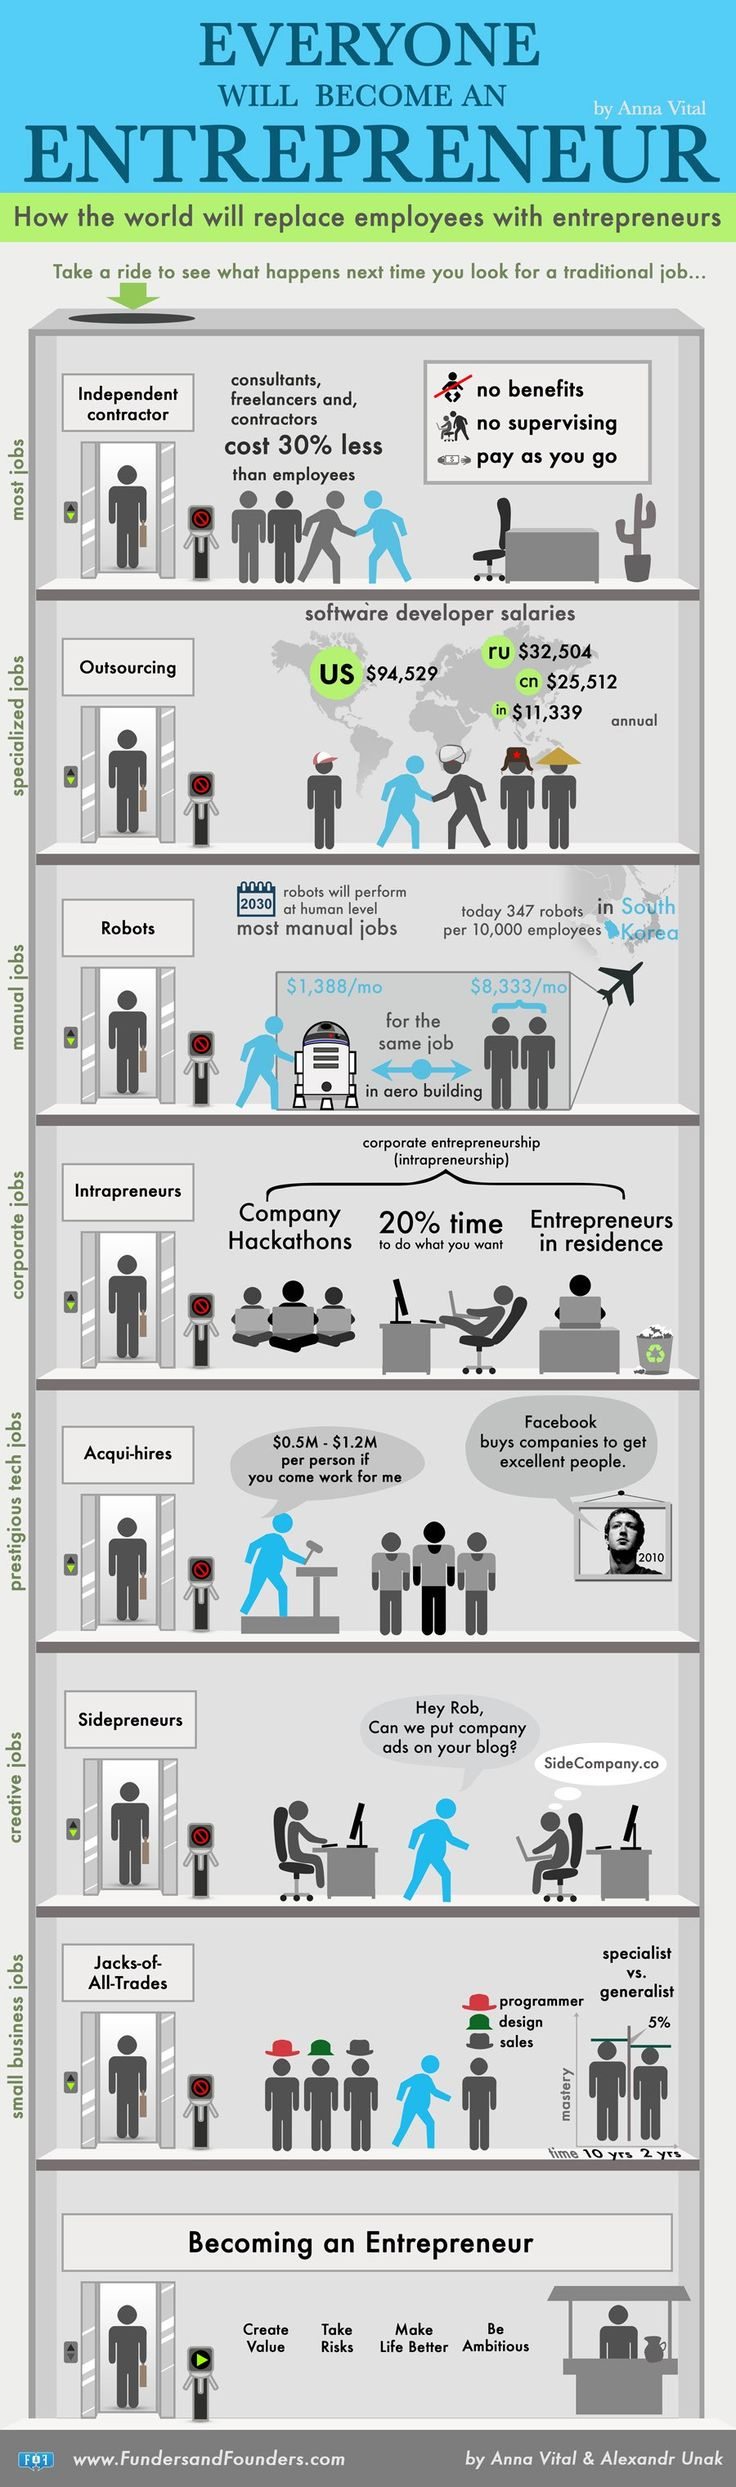 Everyone Will Become An Entrepreneur | Infographic #entrepreneur